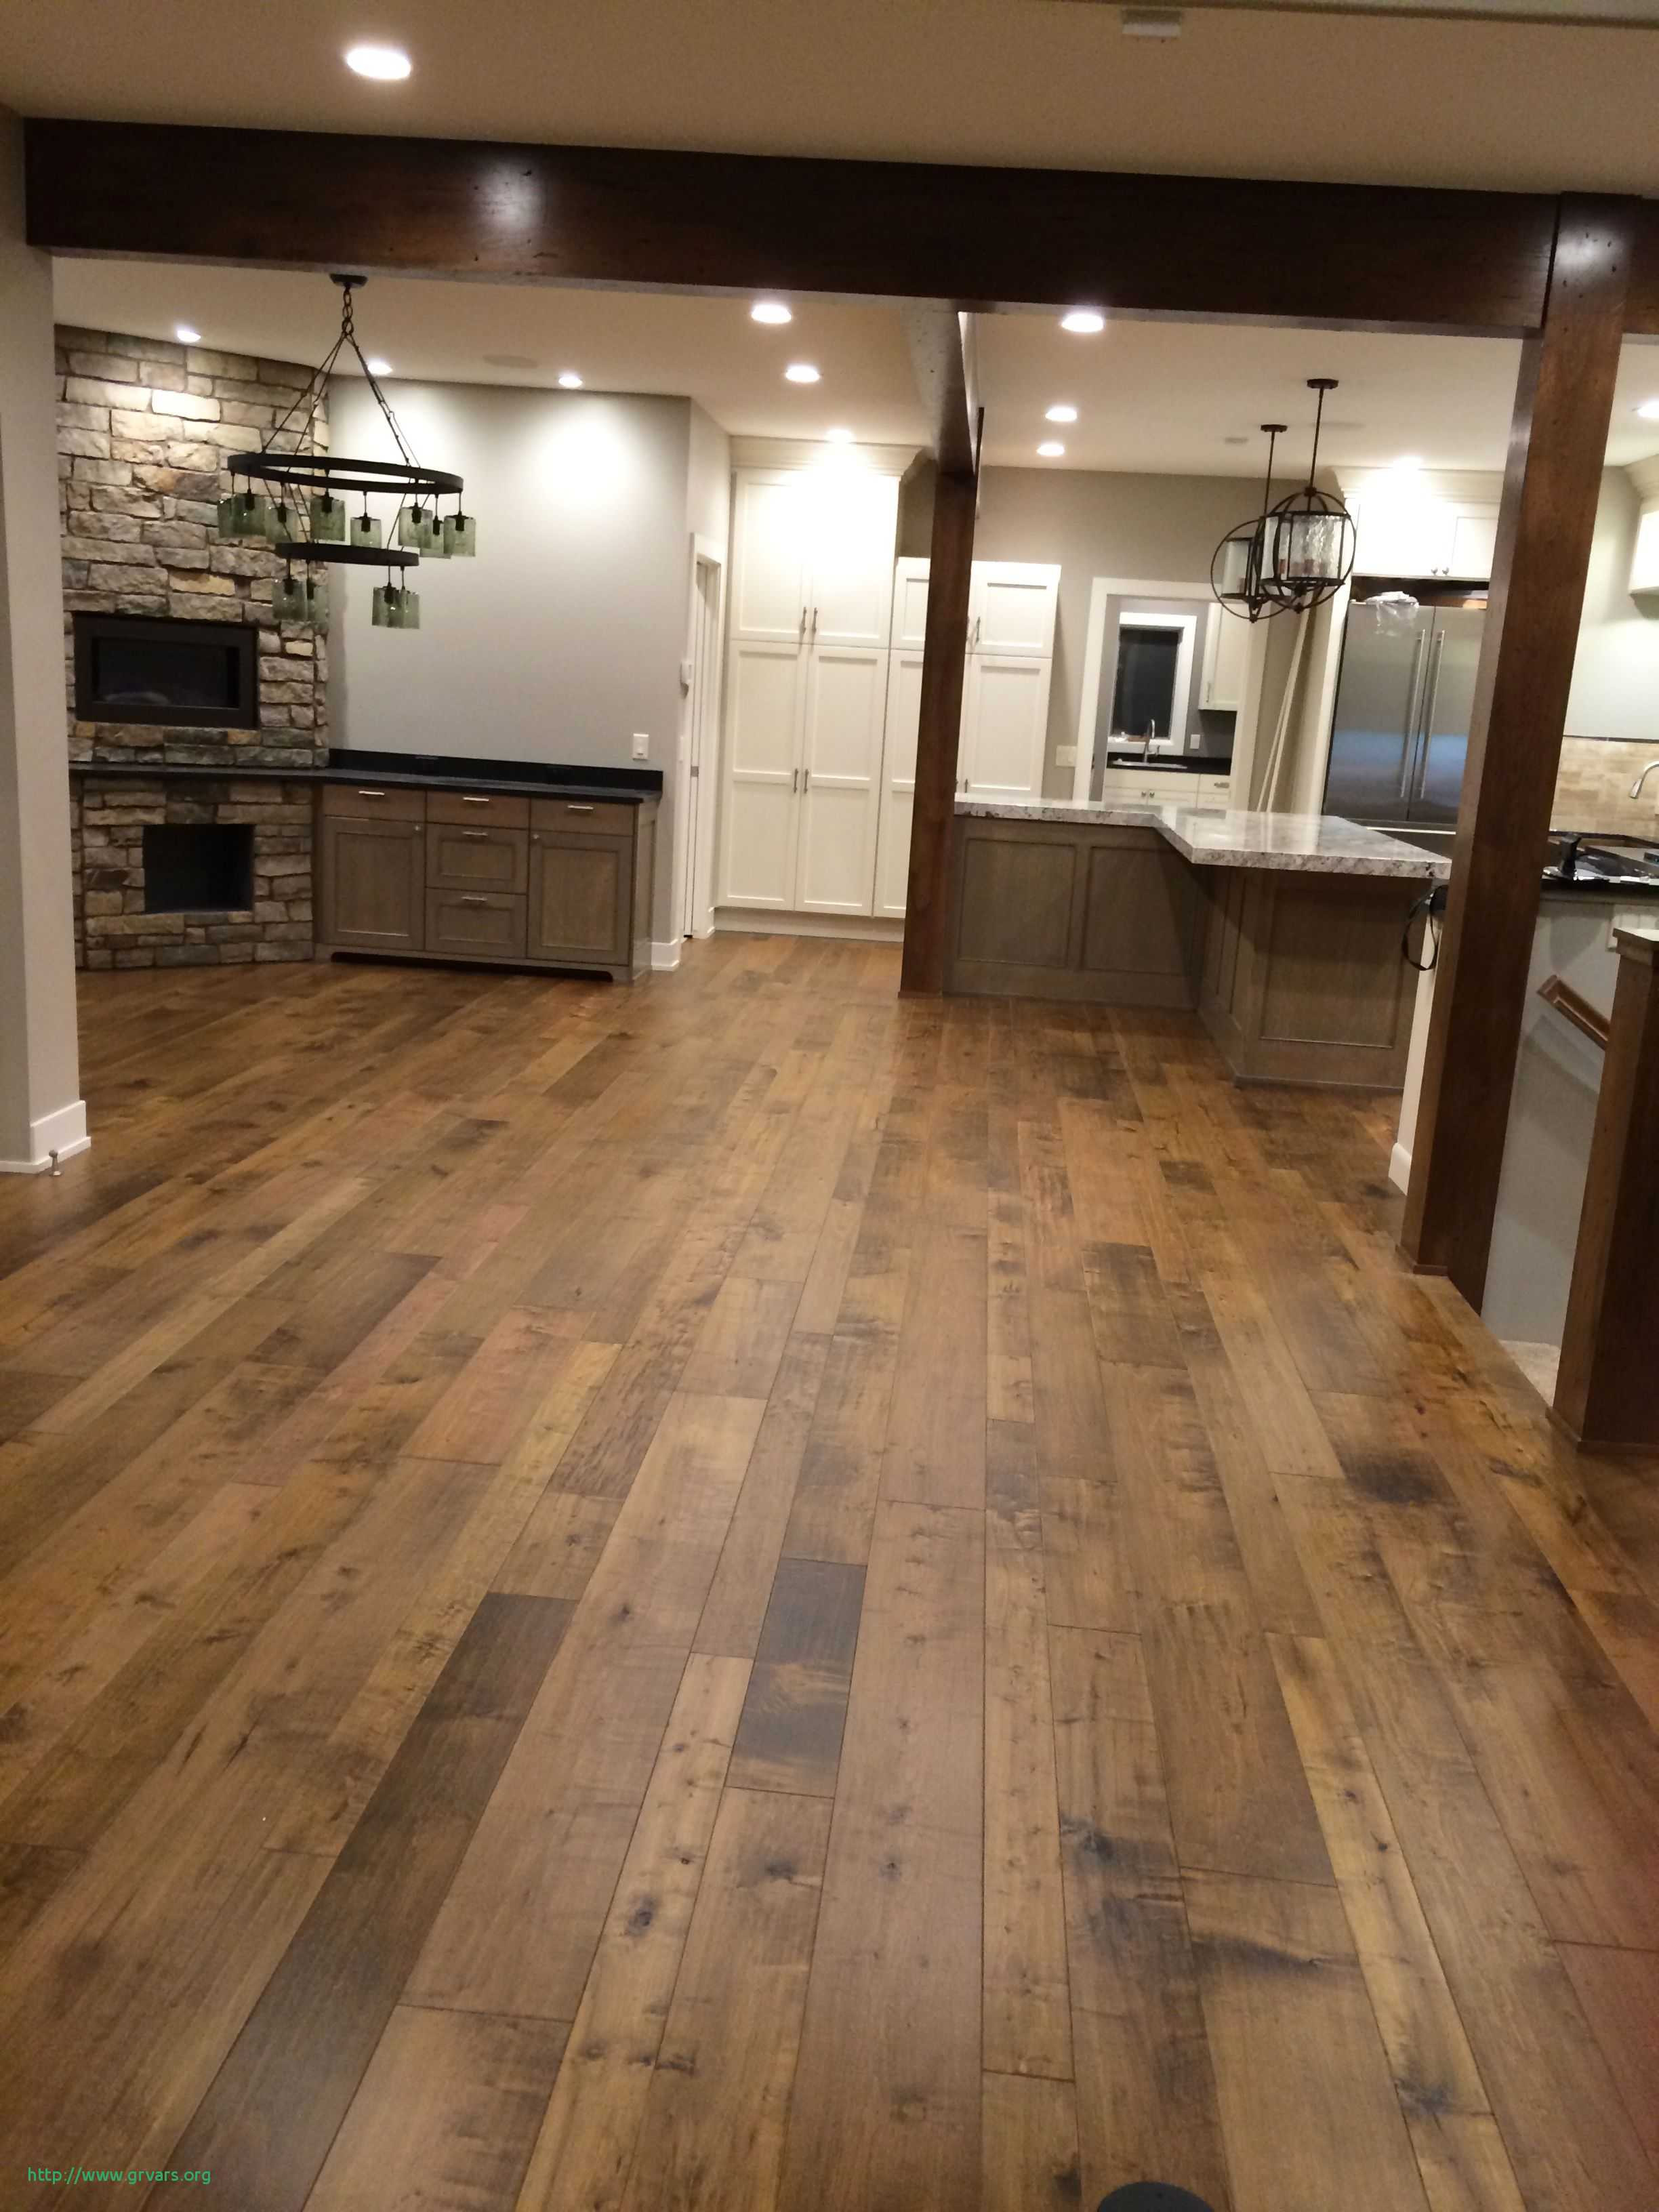 hardwood floor nailer prices of 15 charmant how to buy engineered hardwood flooring ideas blog throughout how to buy engineered hardwood flooring impressionnant monterey hardwood collection rooms and spaces